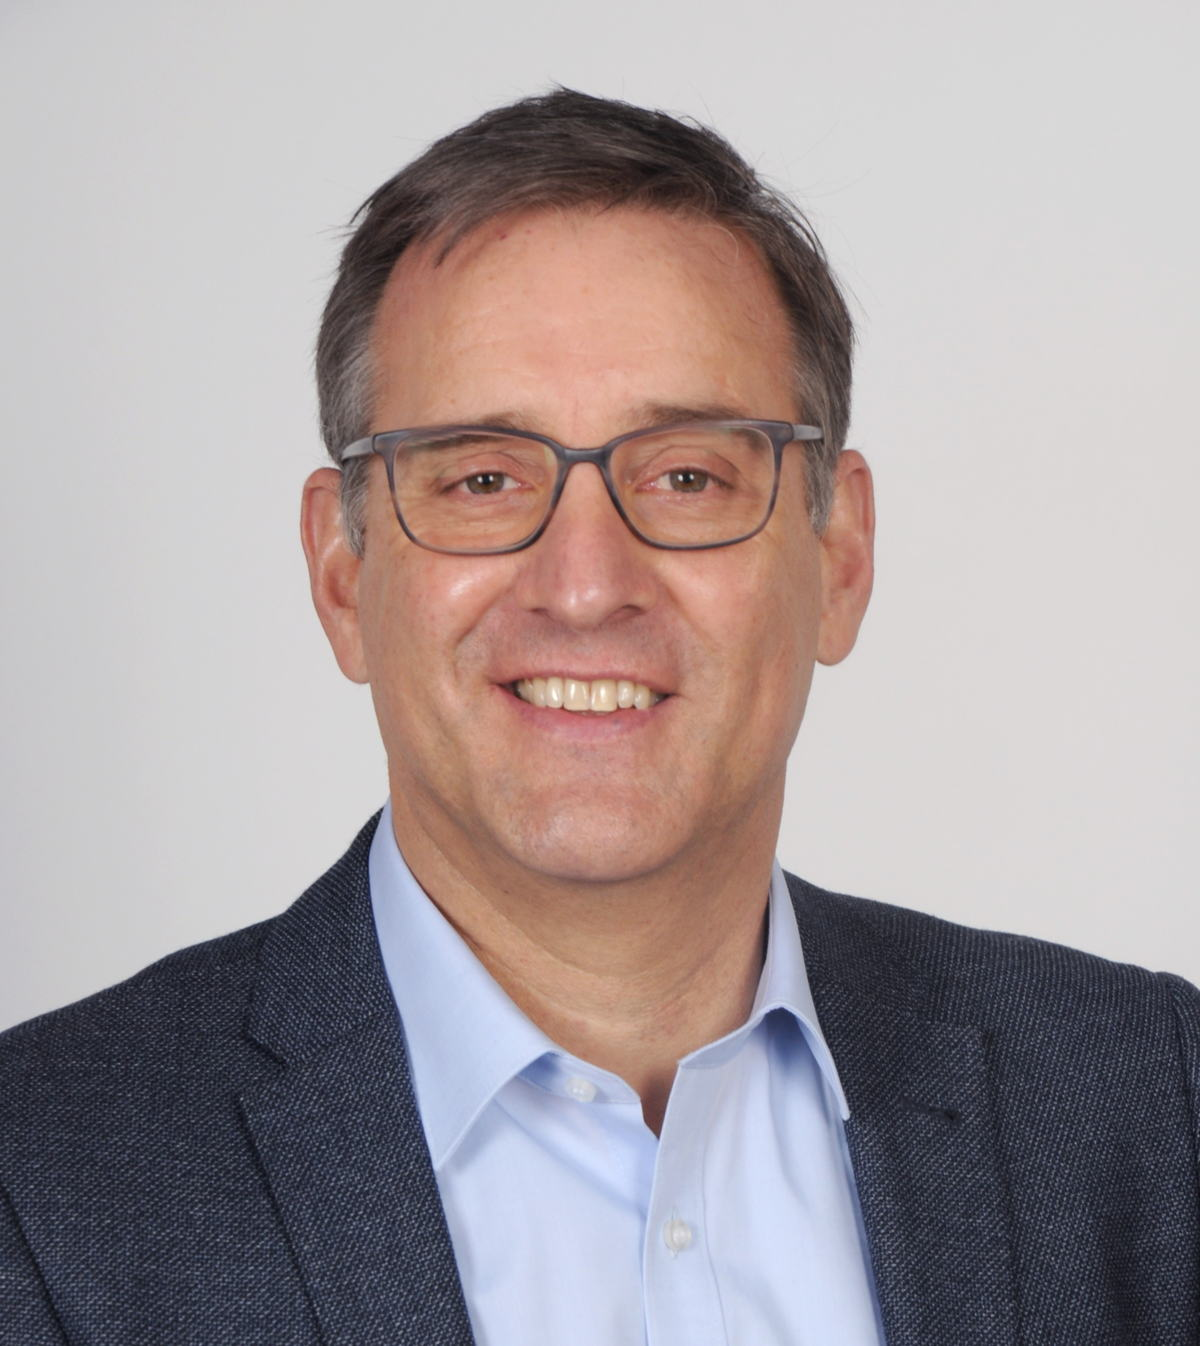 Alfred Vrieling, Vice President Sales Europe bei Compleo